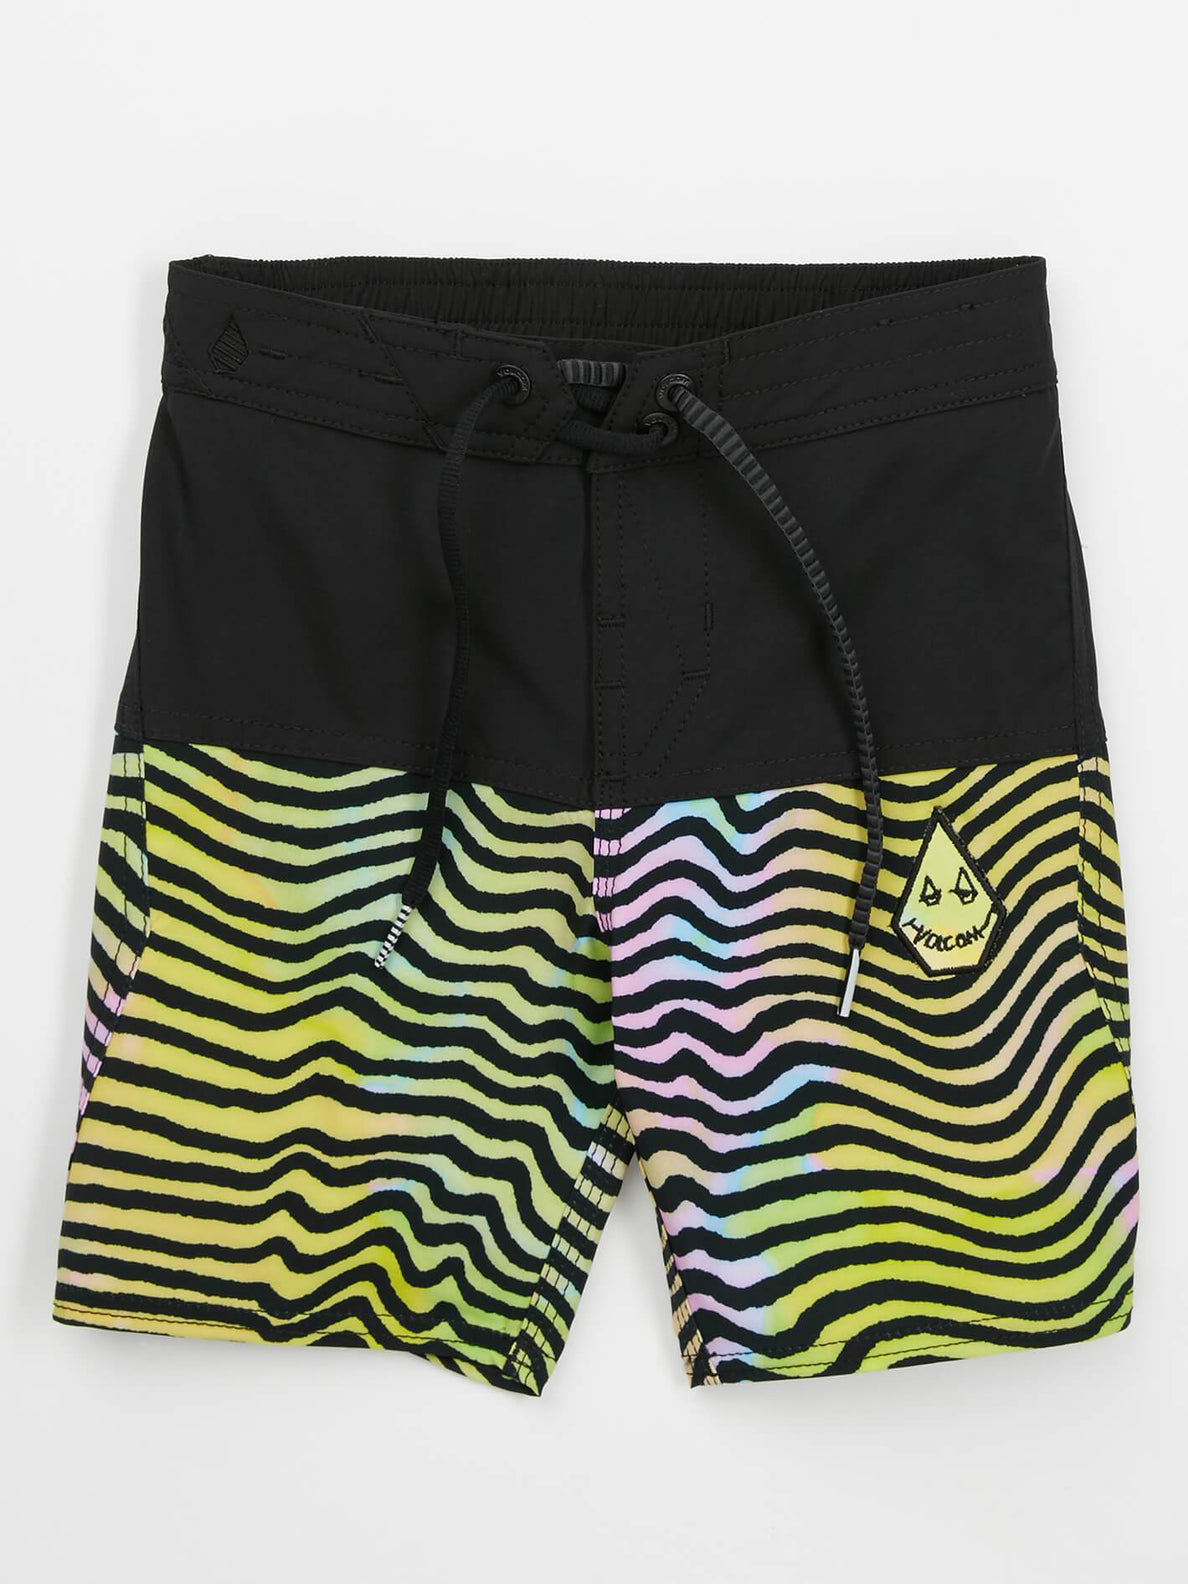 Little Boys Vibes Elastic Boardshorts In Multi, Front View